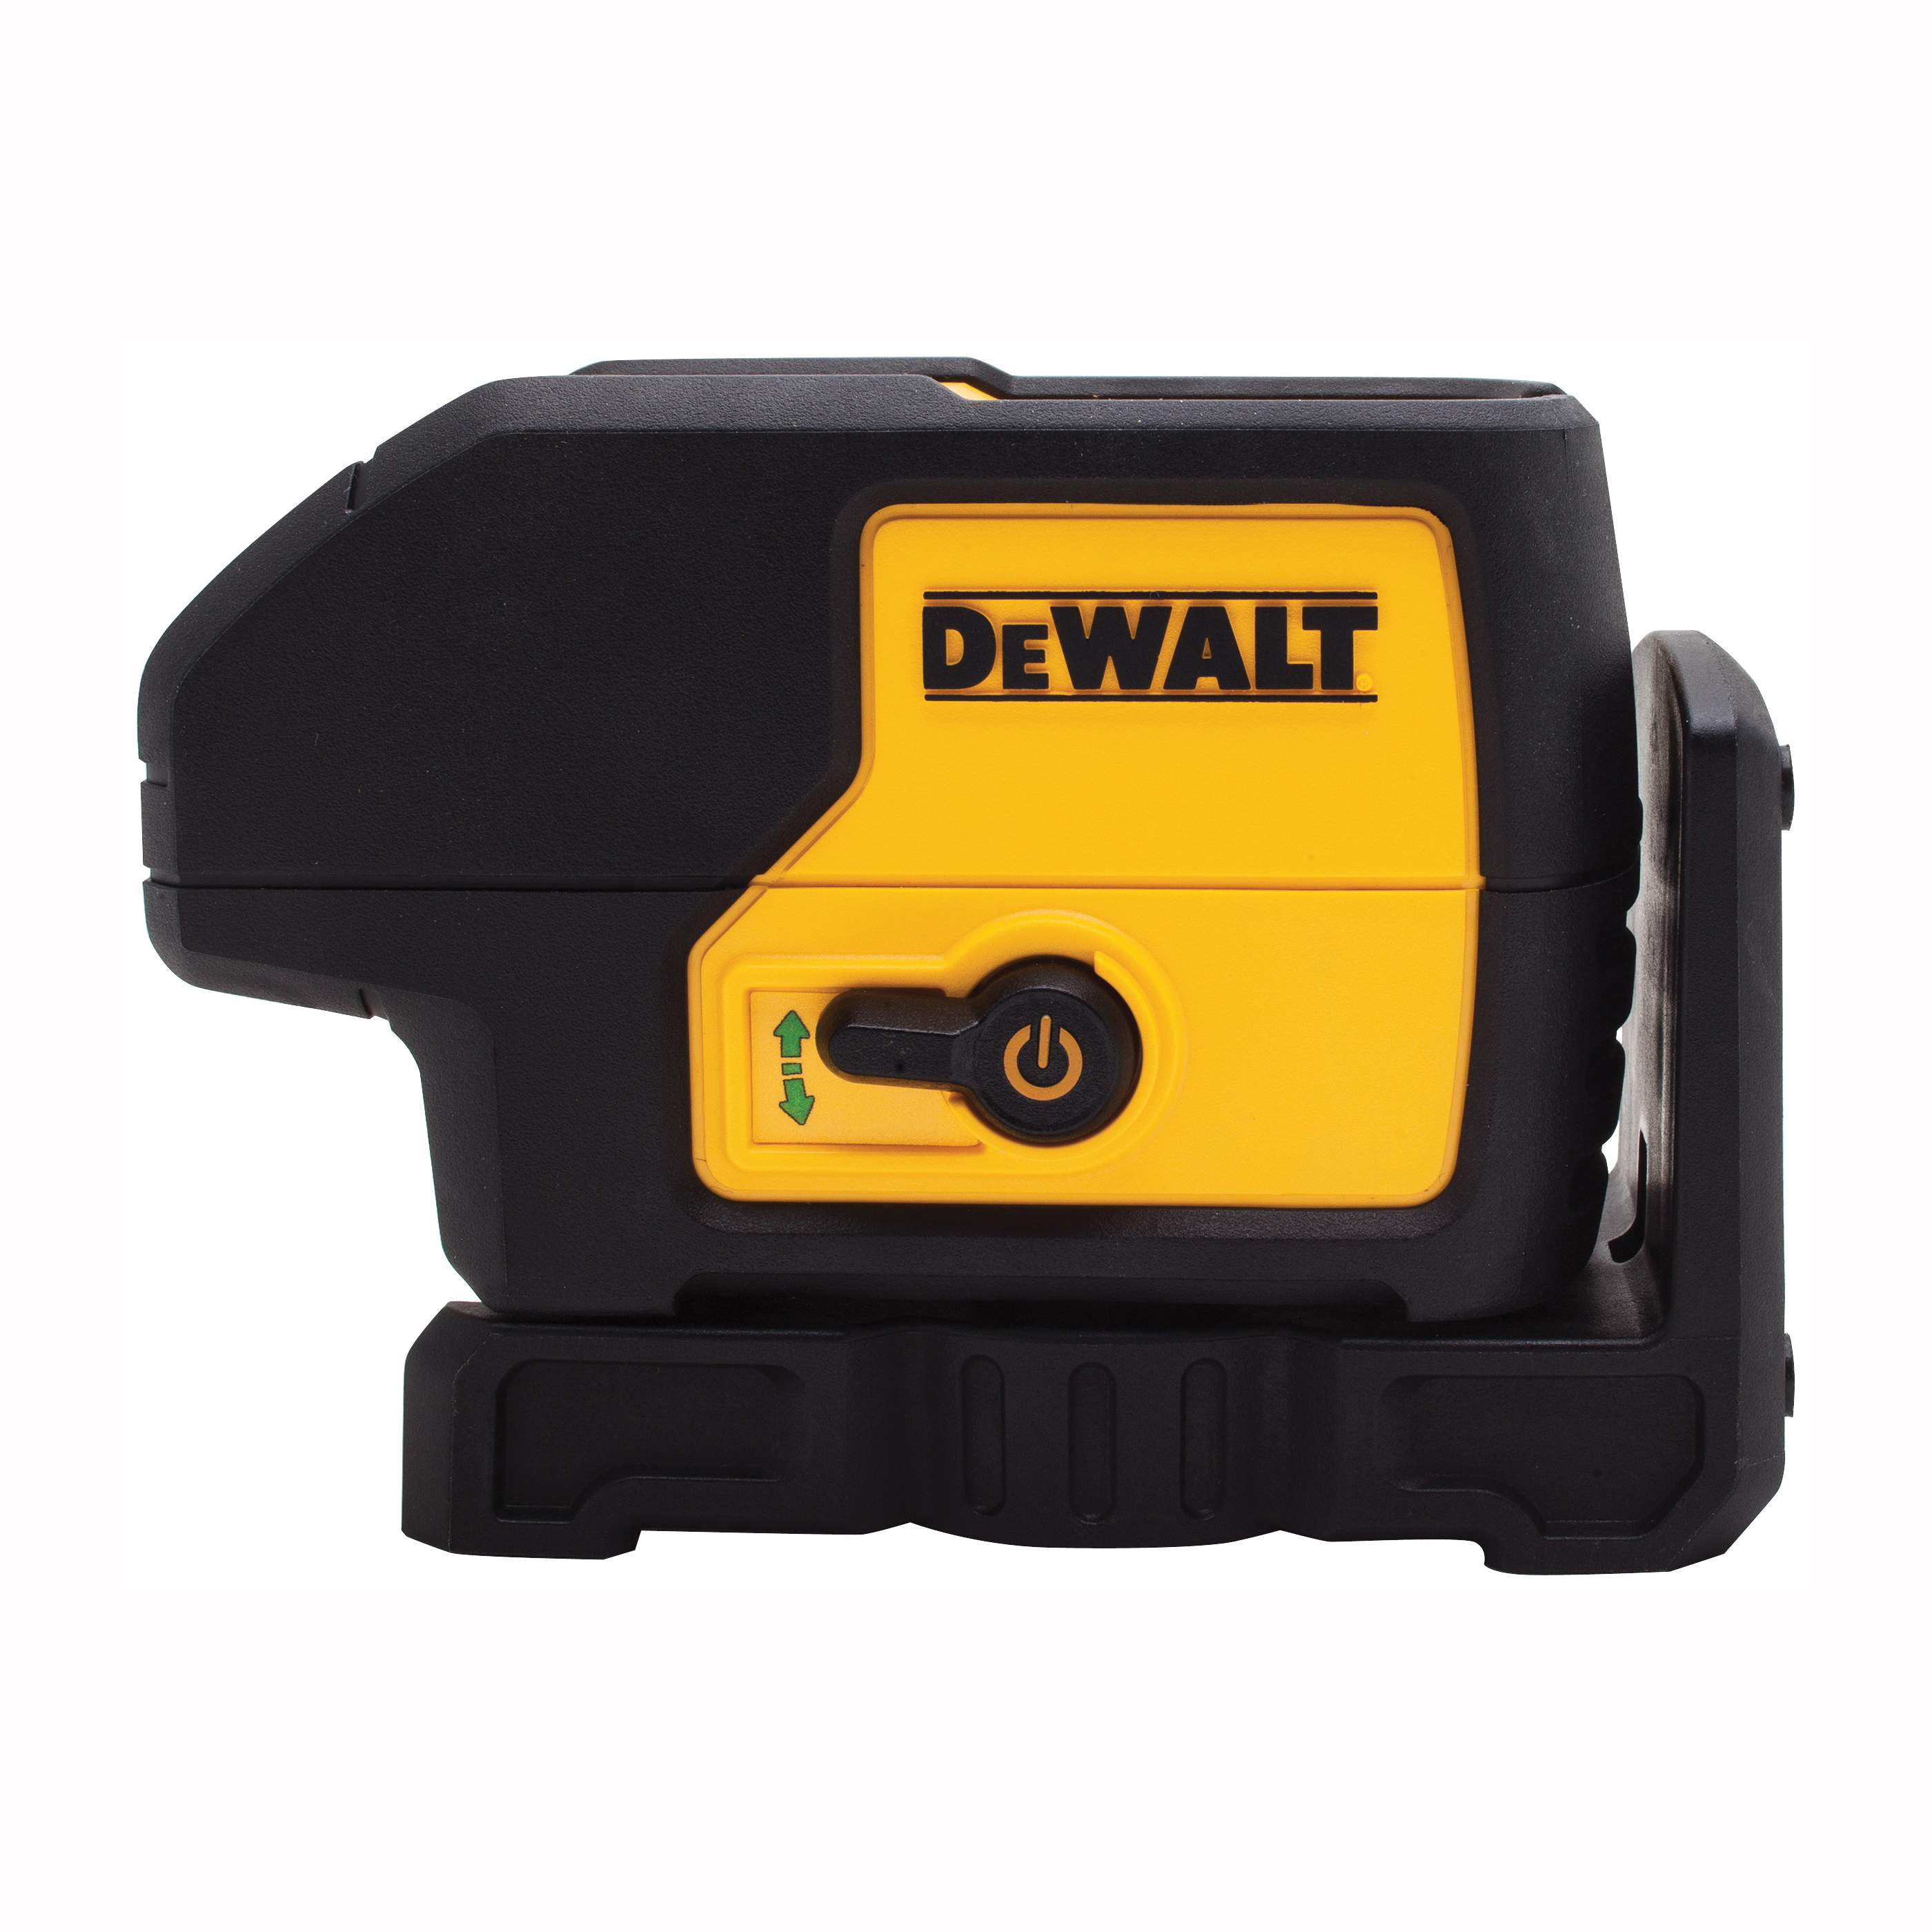 Picture of DeWALT DW083CG Laser Level, 100 ft, +/-1/8 in at 30 ft Accuracy, Green Laser